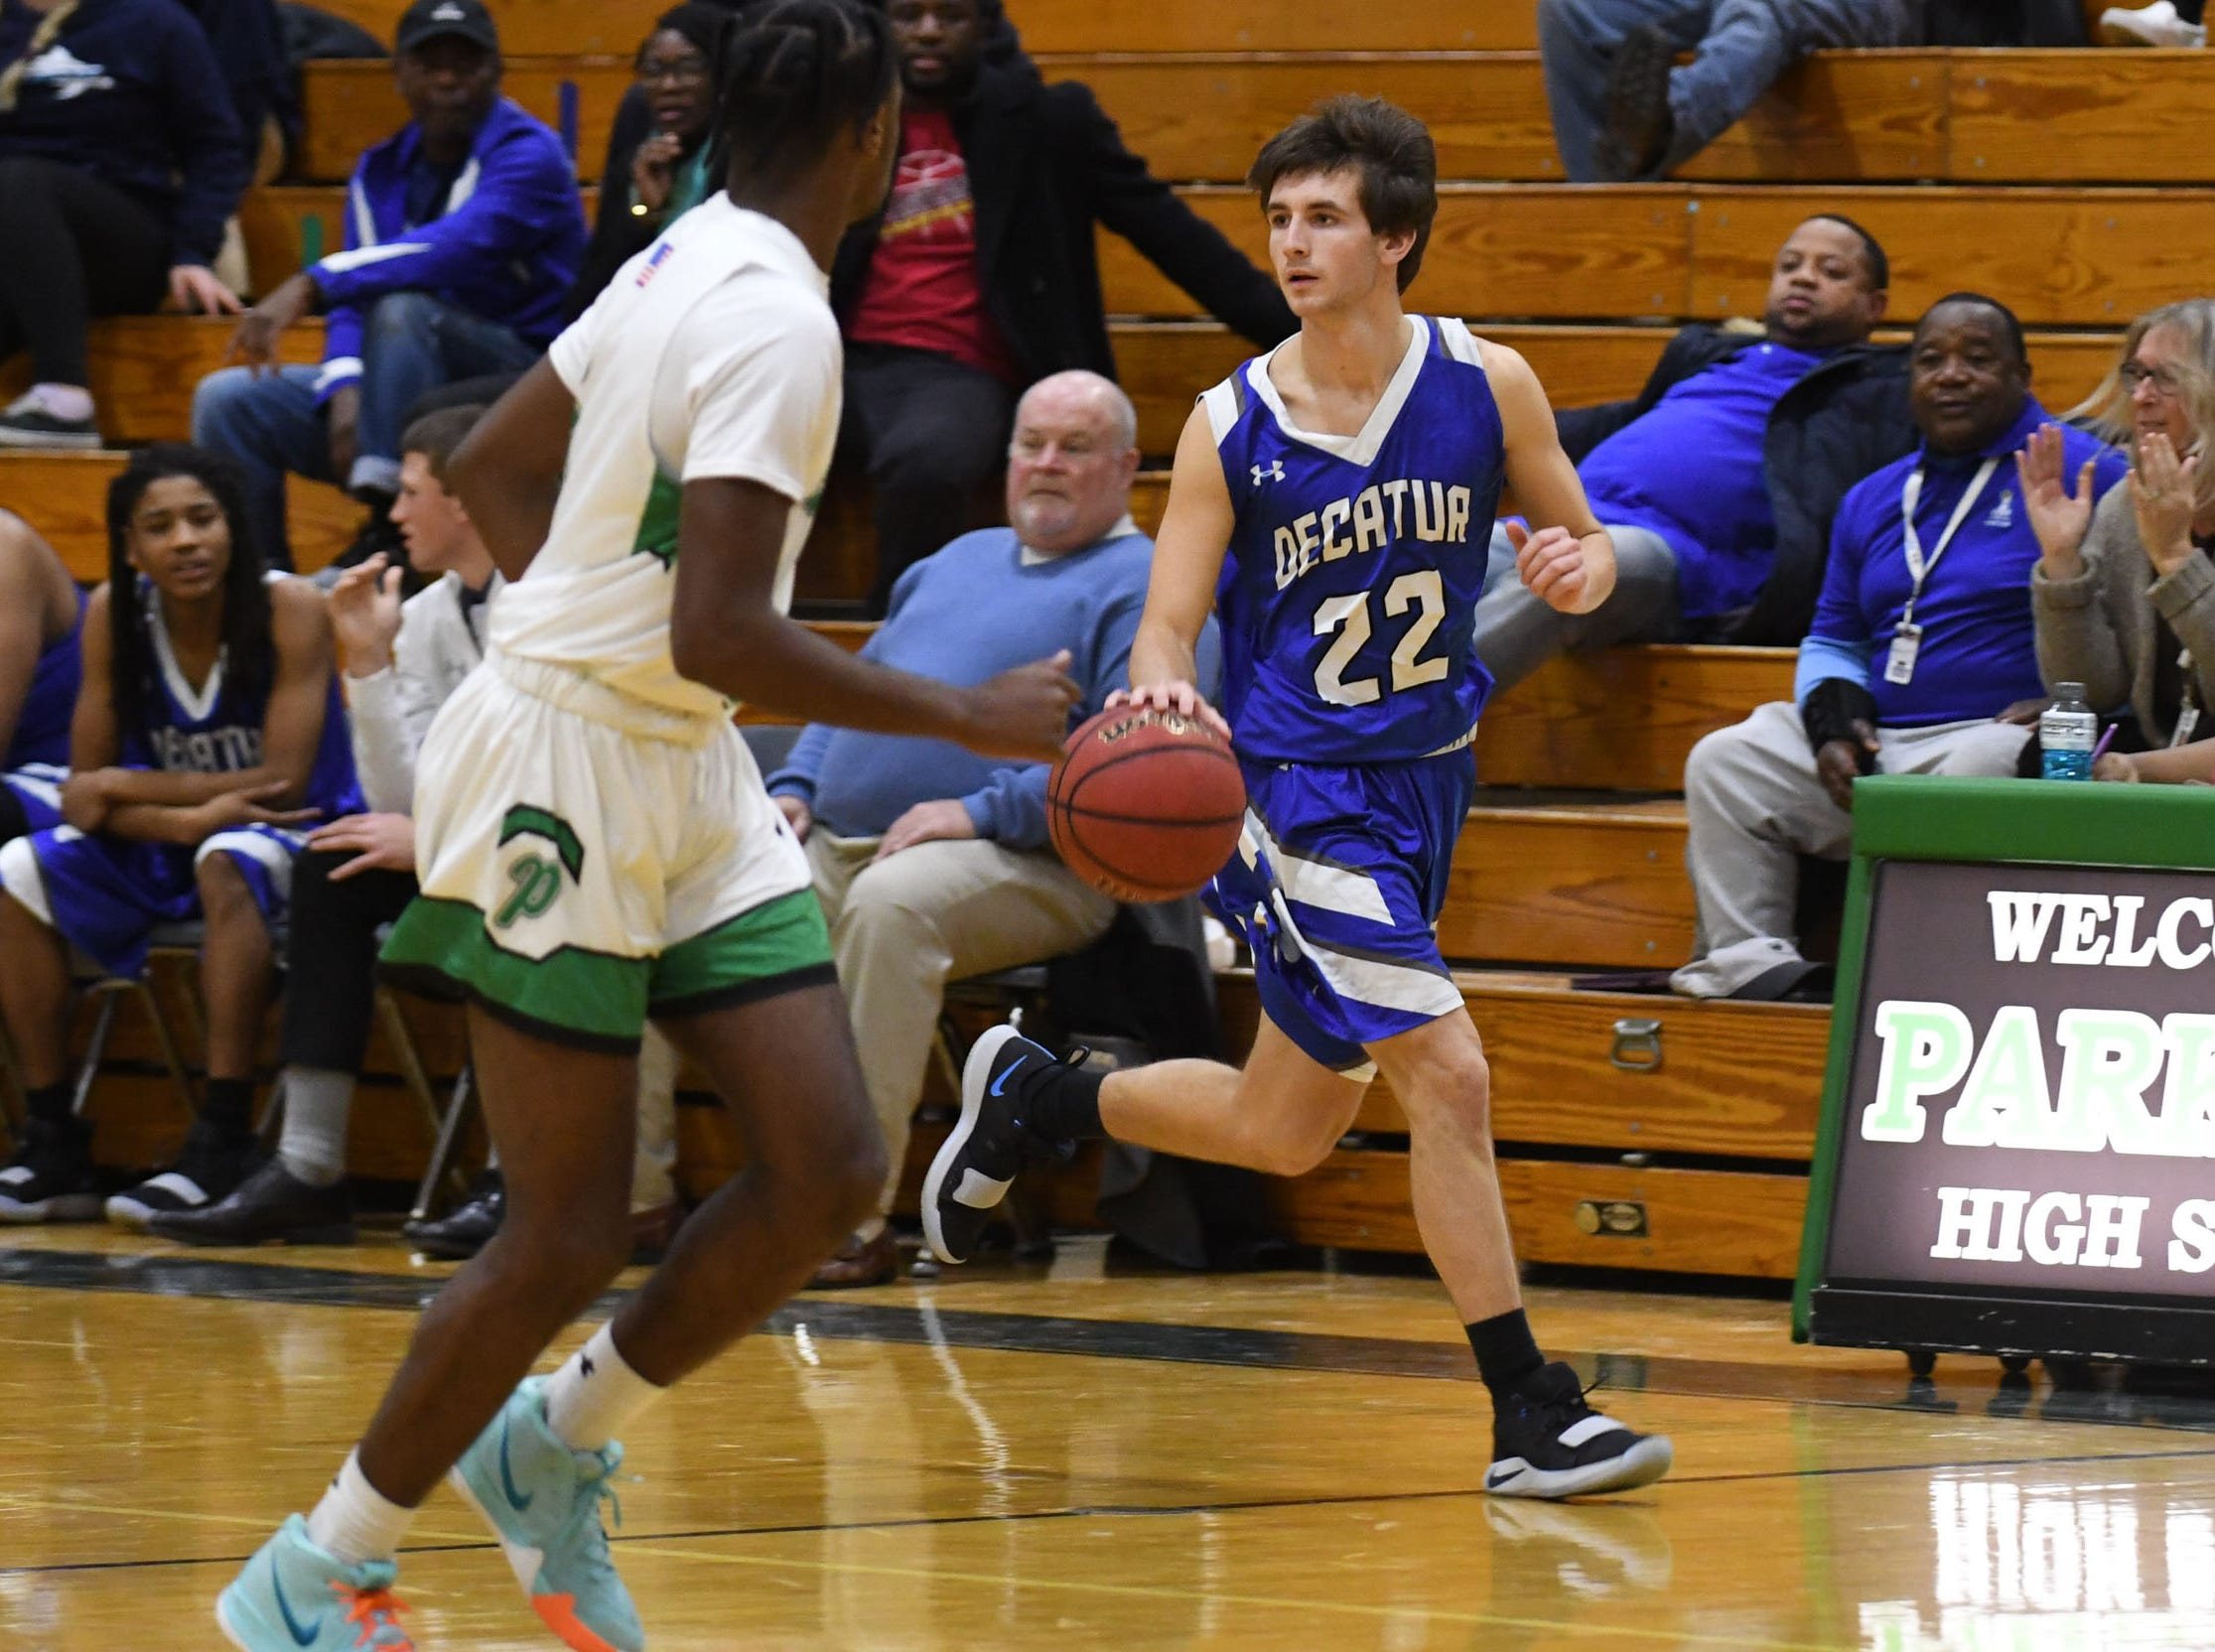 Stephen Decatur's Brett Berquest with the ball against Parkside on Thursday, Jan. 10, 2019.